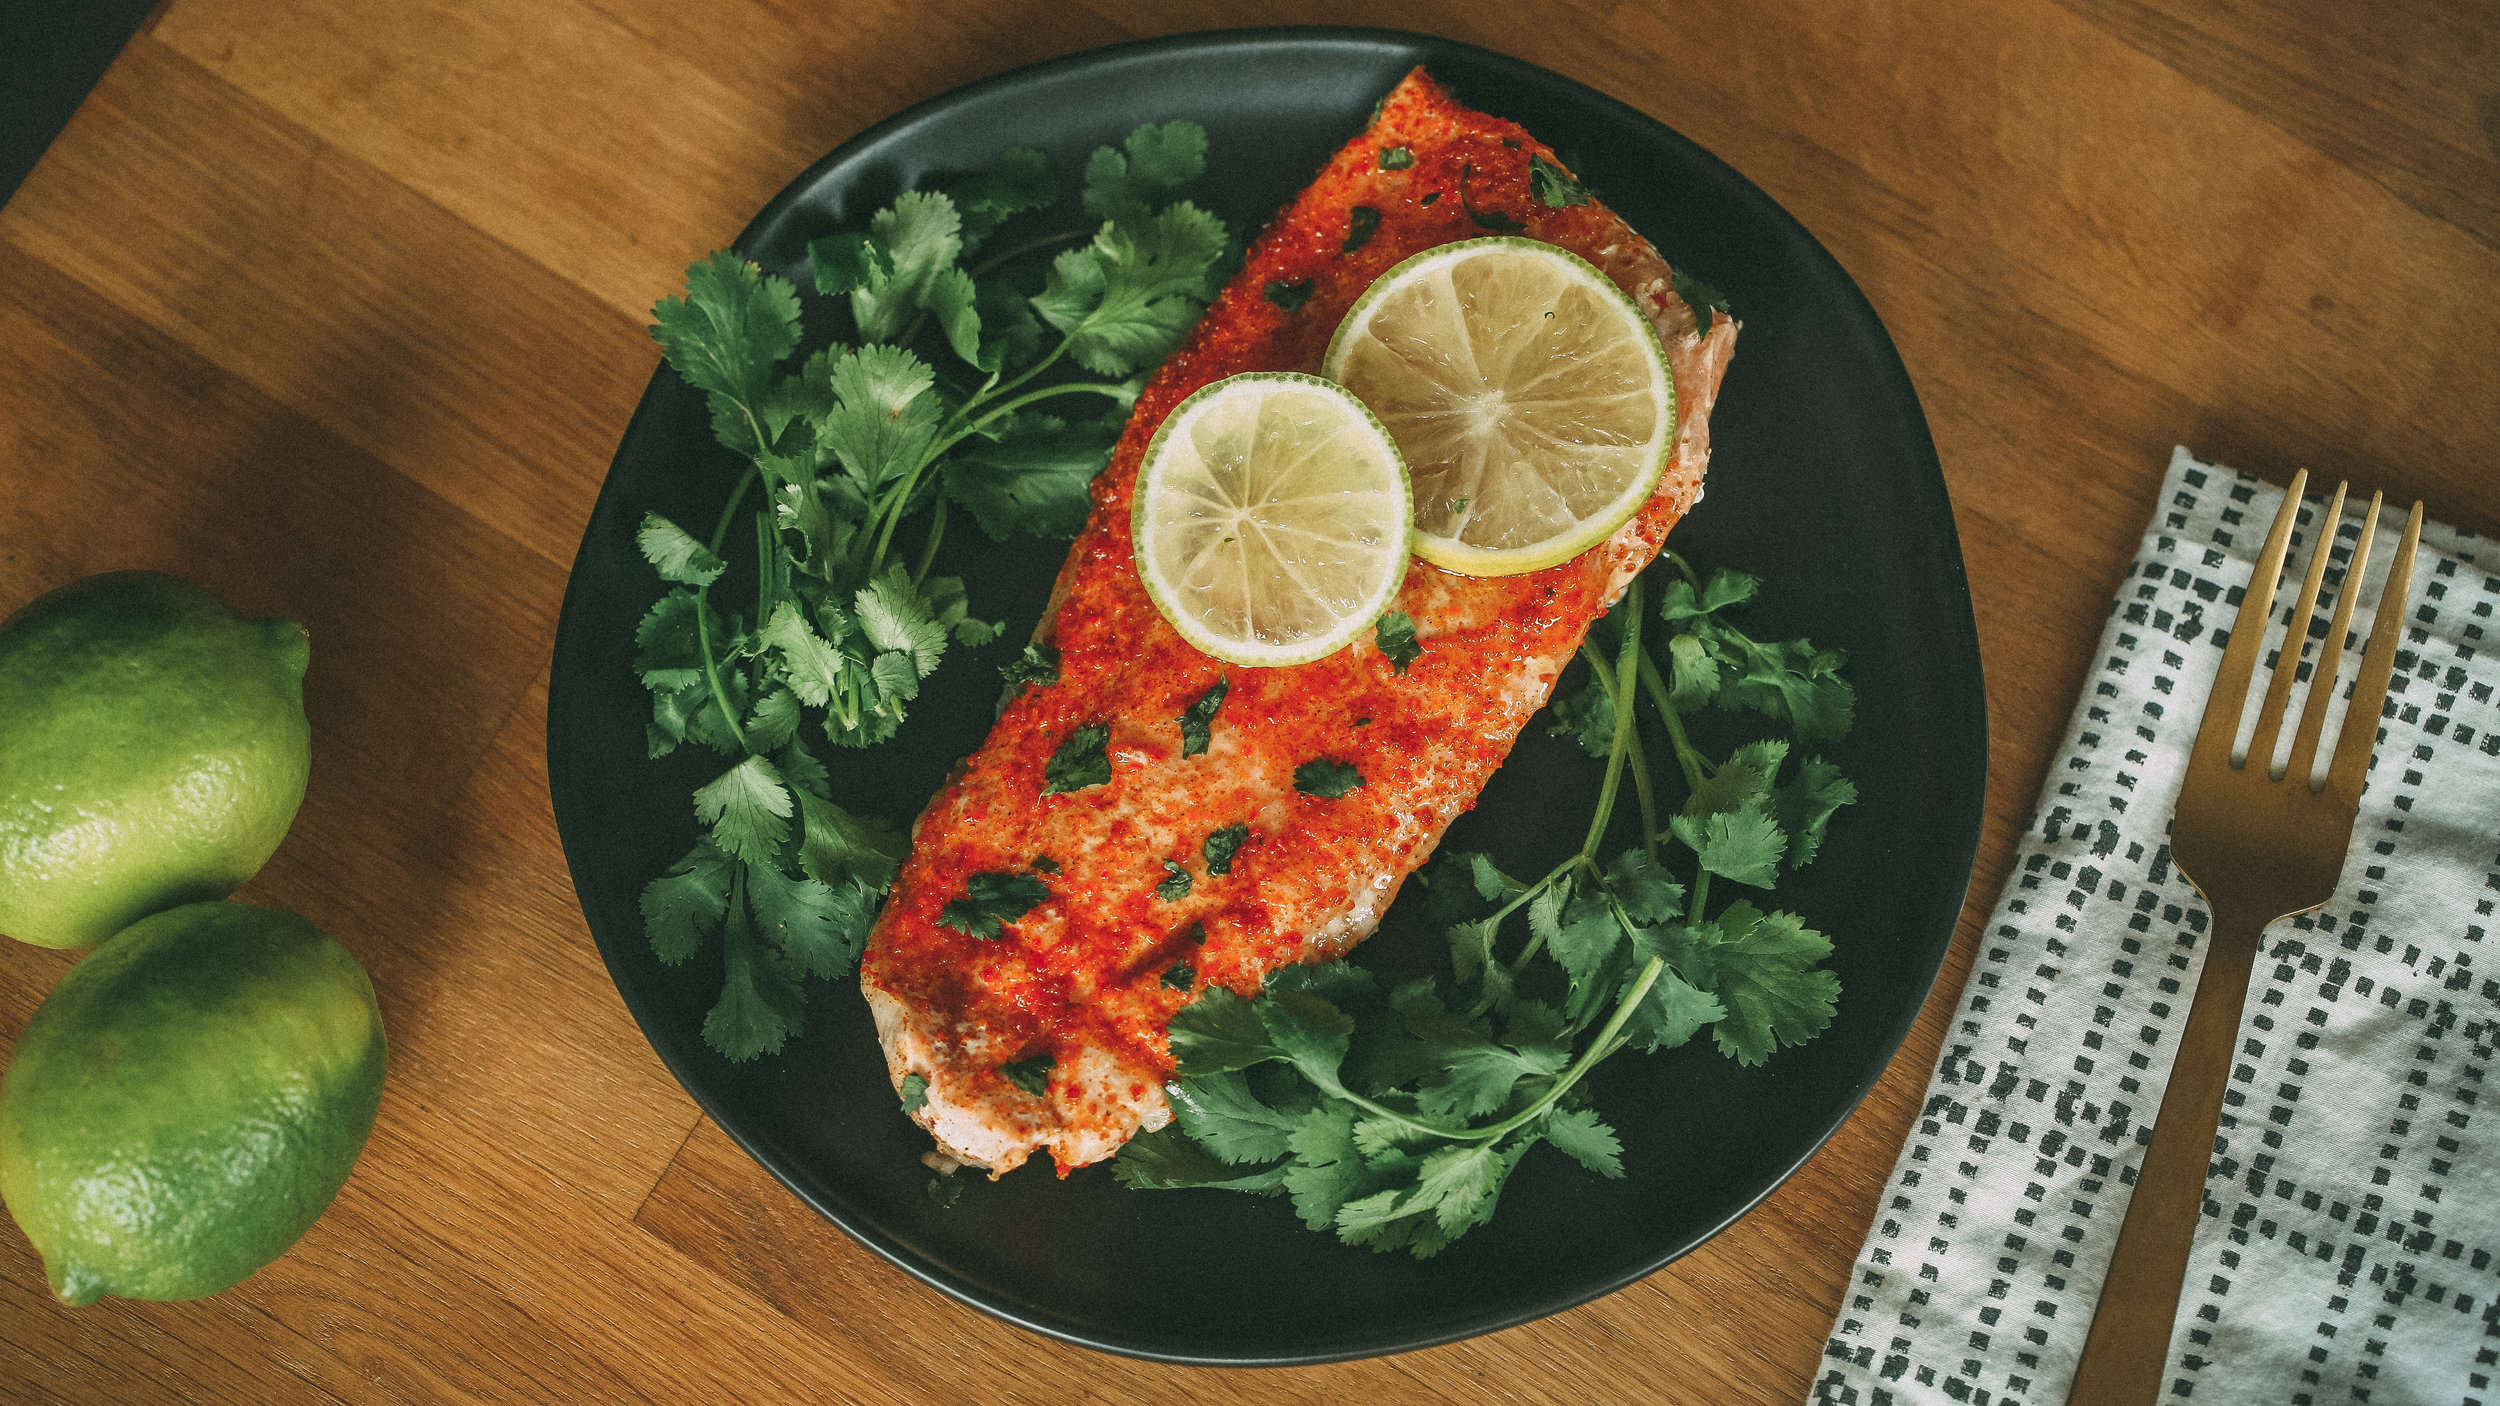 chililimesalmon-31.jpg